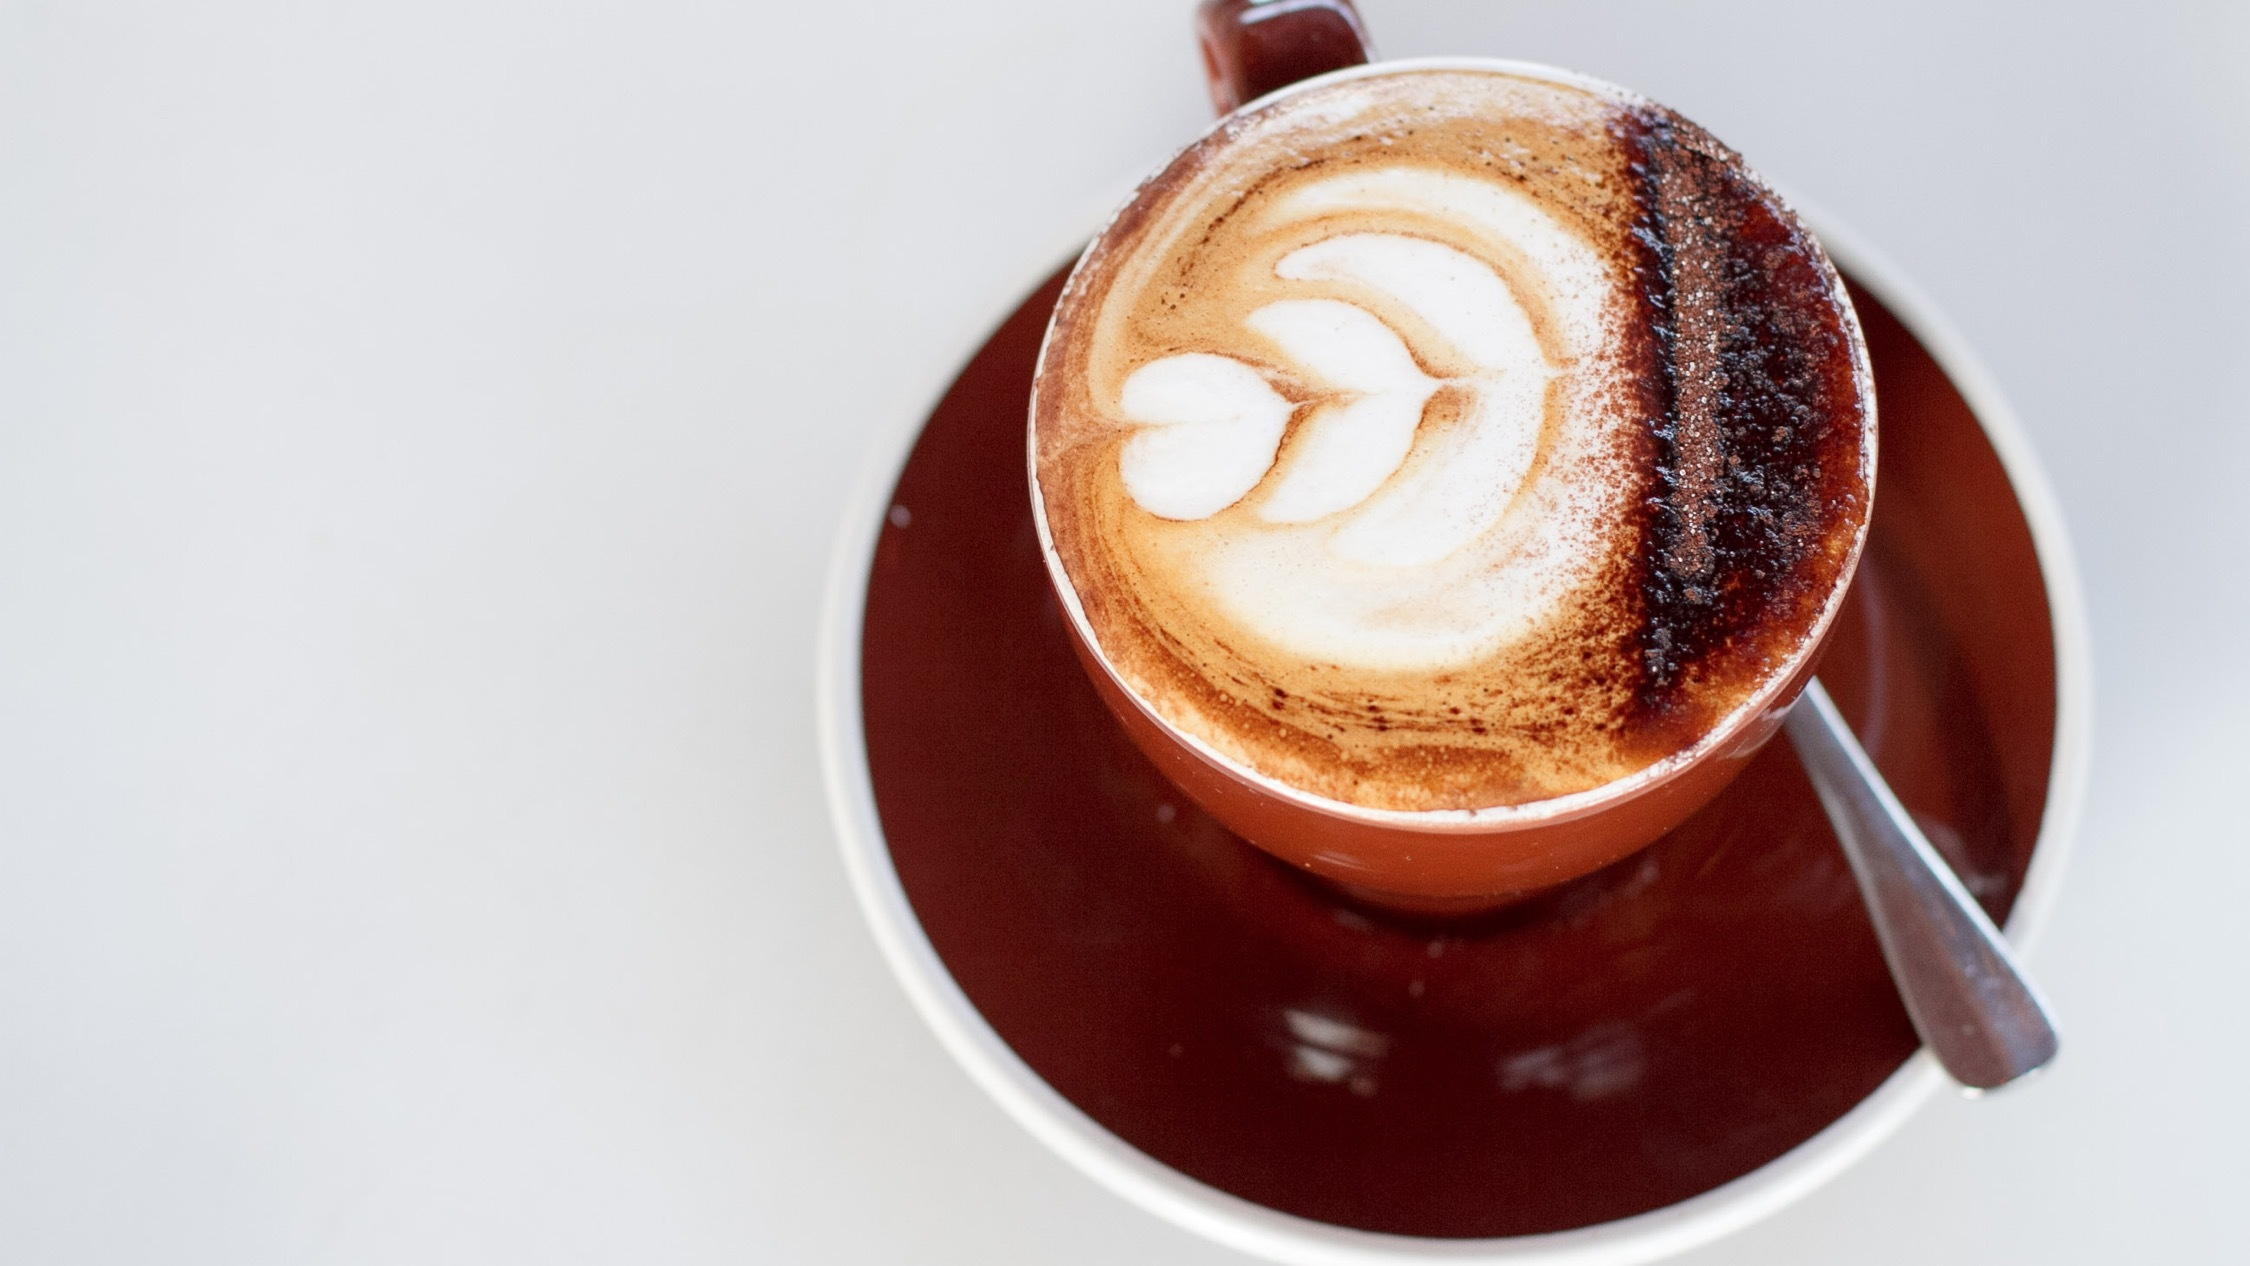 Coffee at Nshry